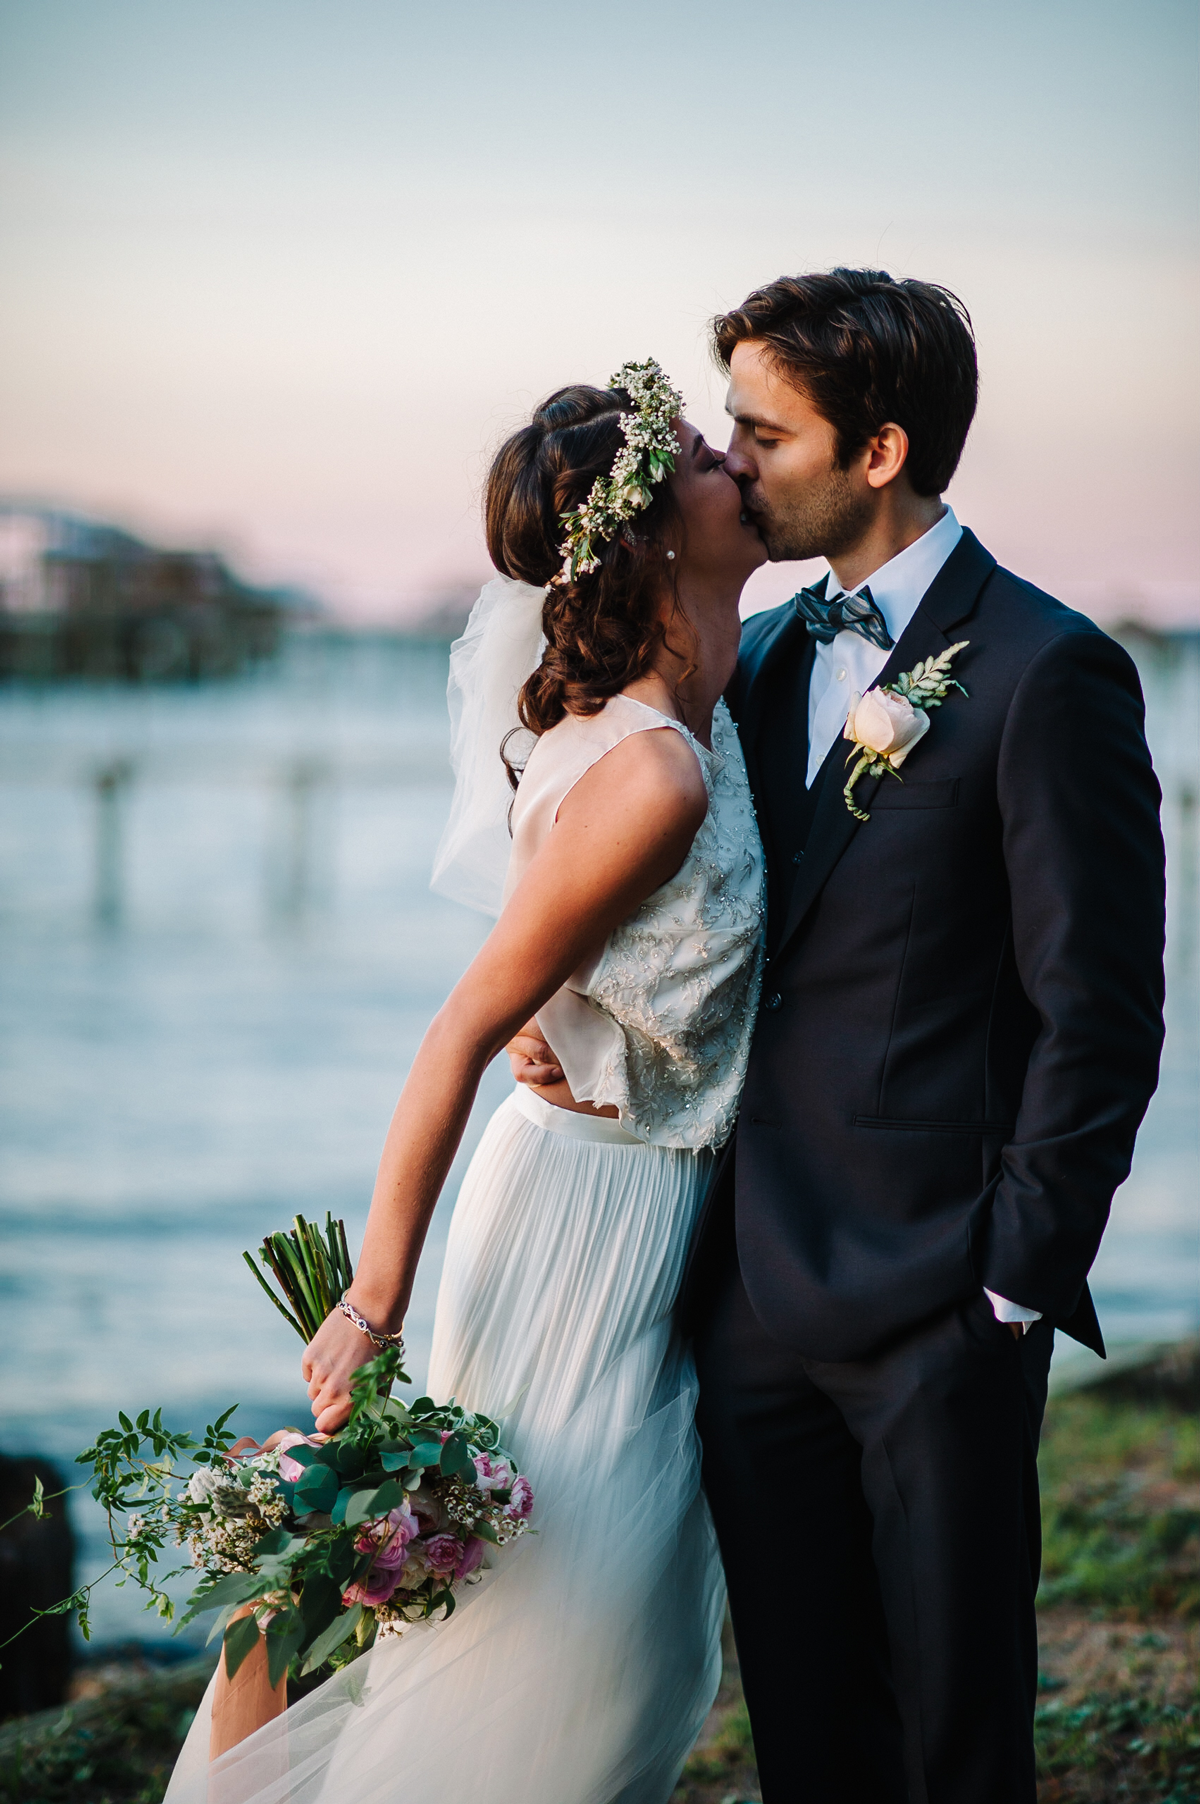 Maid Of Social, wedding inspiration, interview heather hall, du-castel-photography